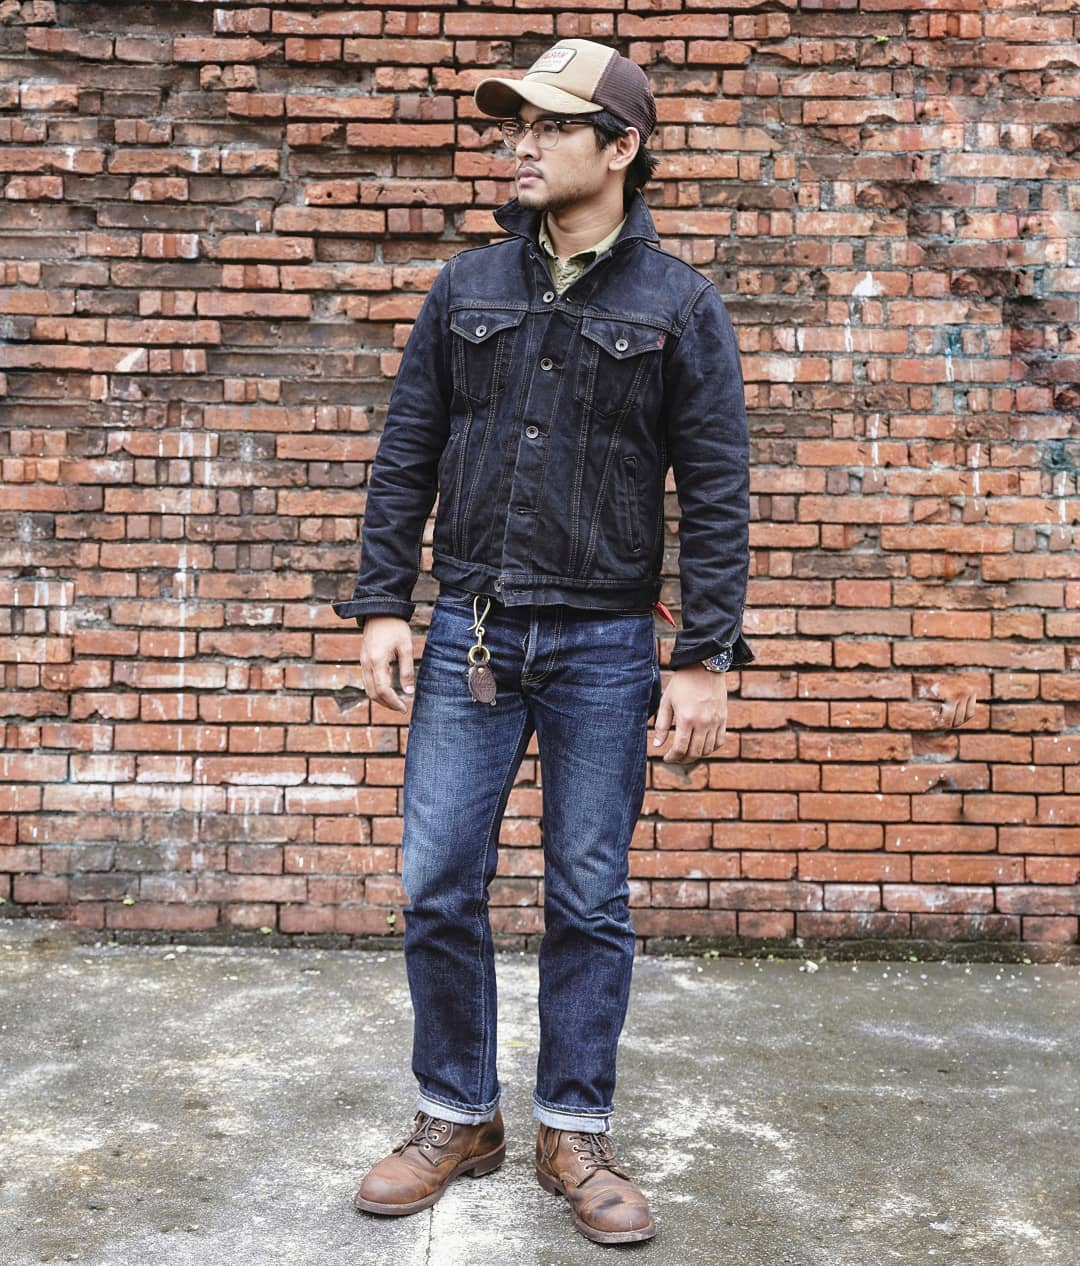 Must-follow Instagrammers. Iron Heart army. heavyweight denim, made in Japan, raw denim, Iron Heart